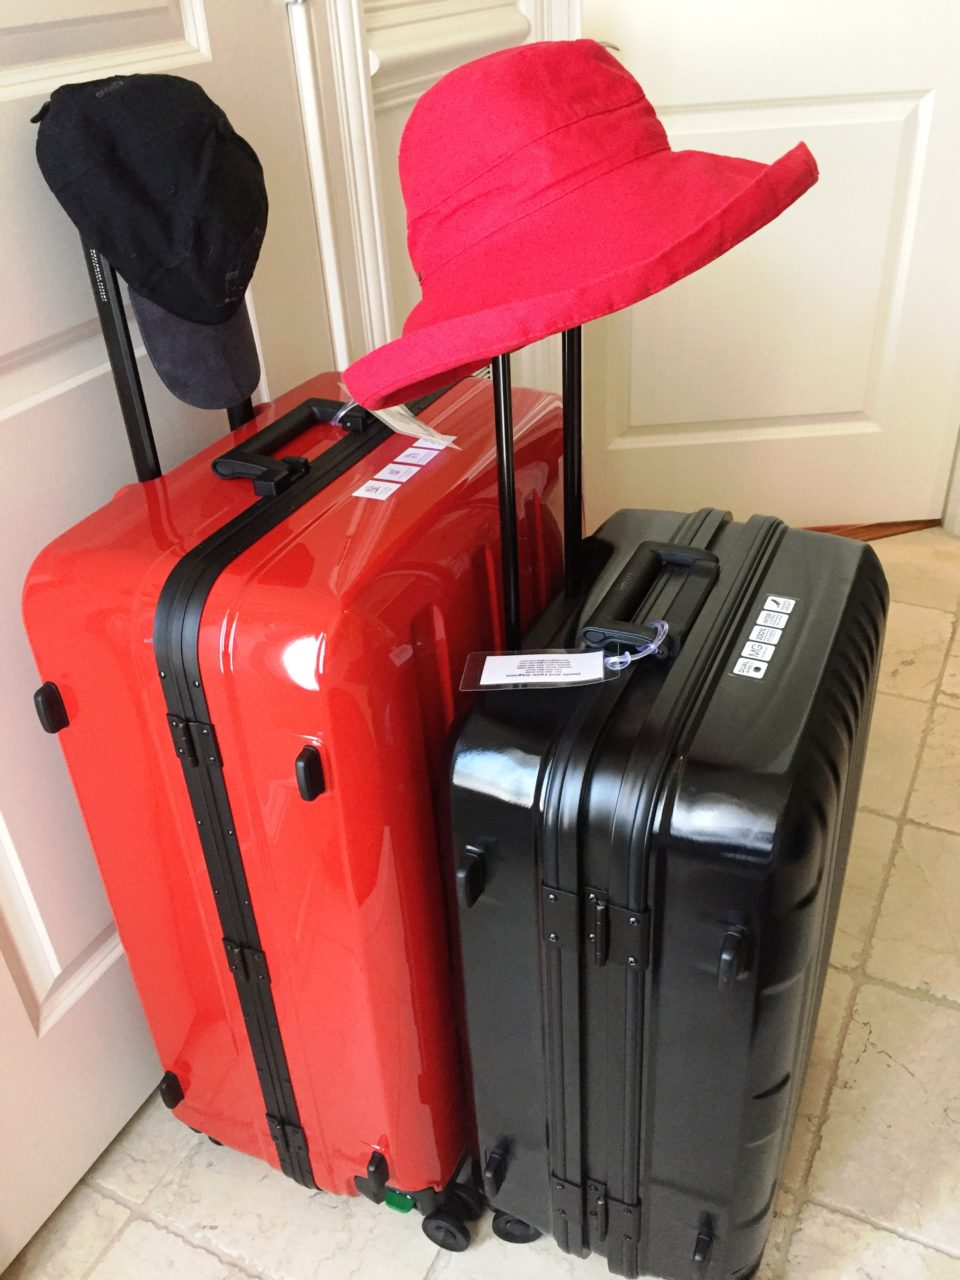 The Art of Travel Preparation ~ All set for another trip with our sturdy Lojel suitcases (www.lojel.com)